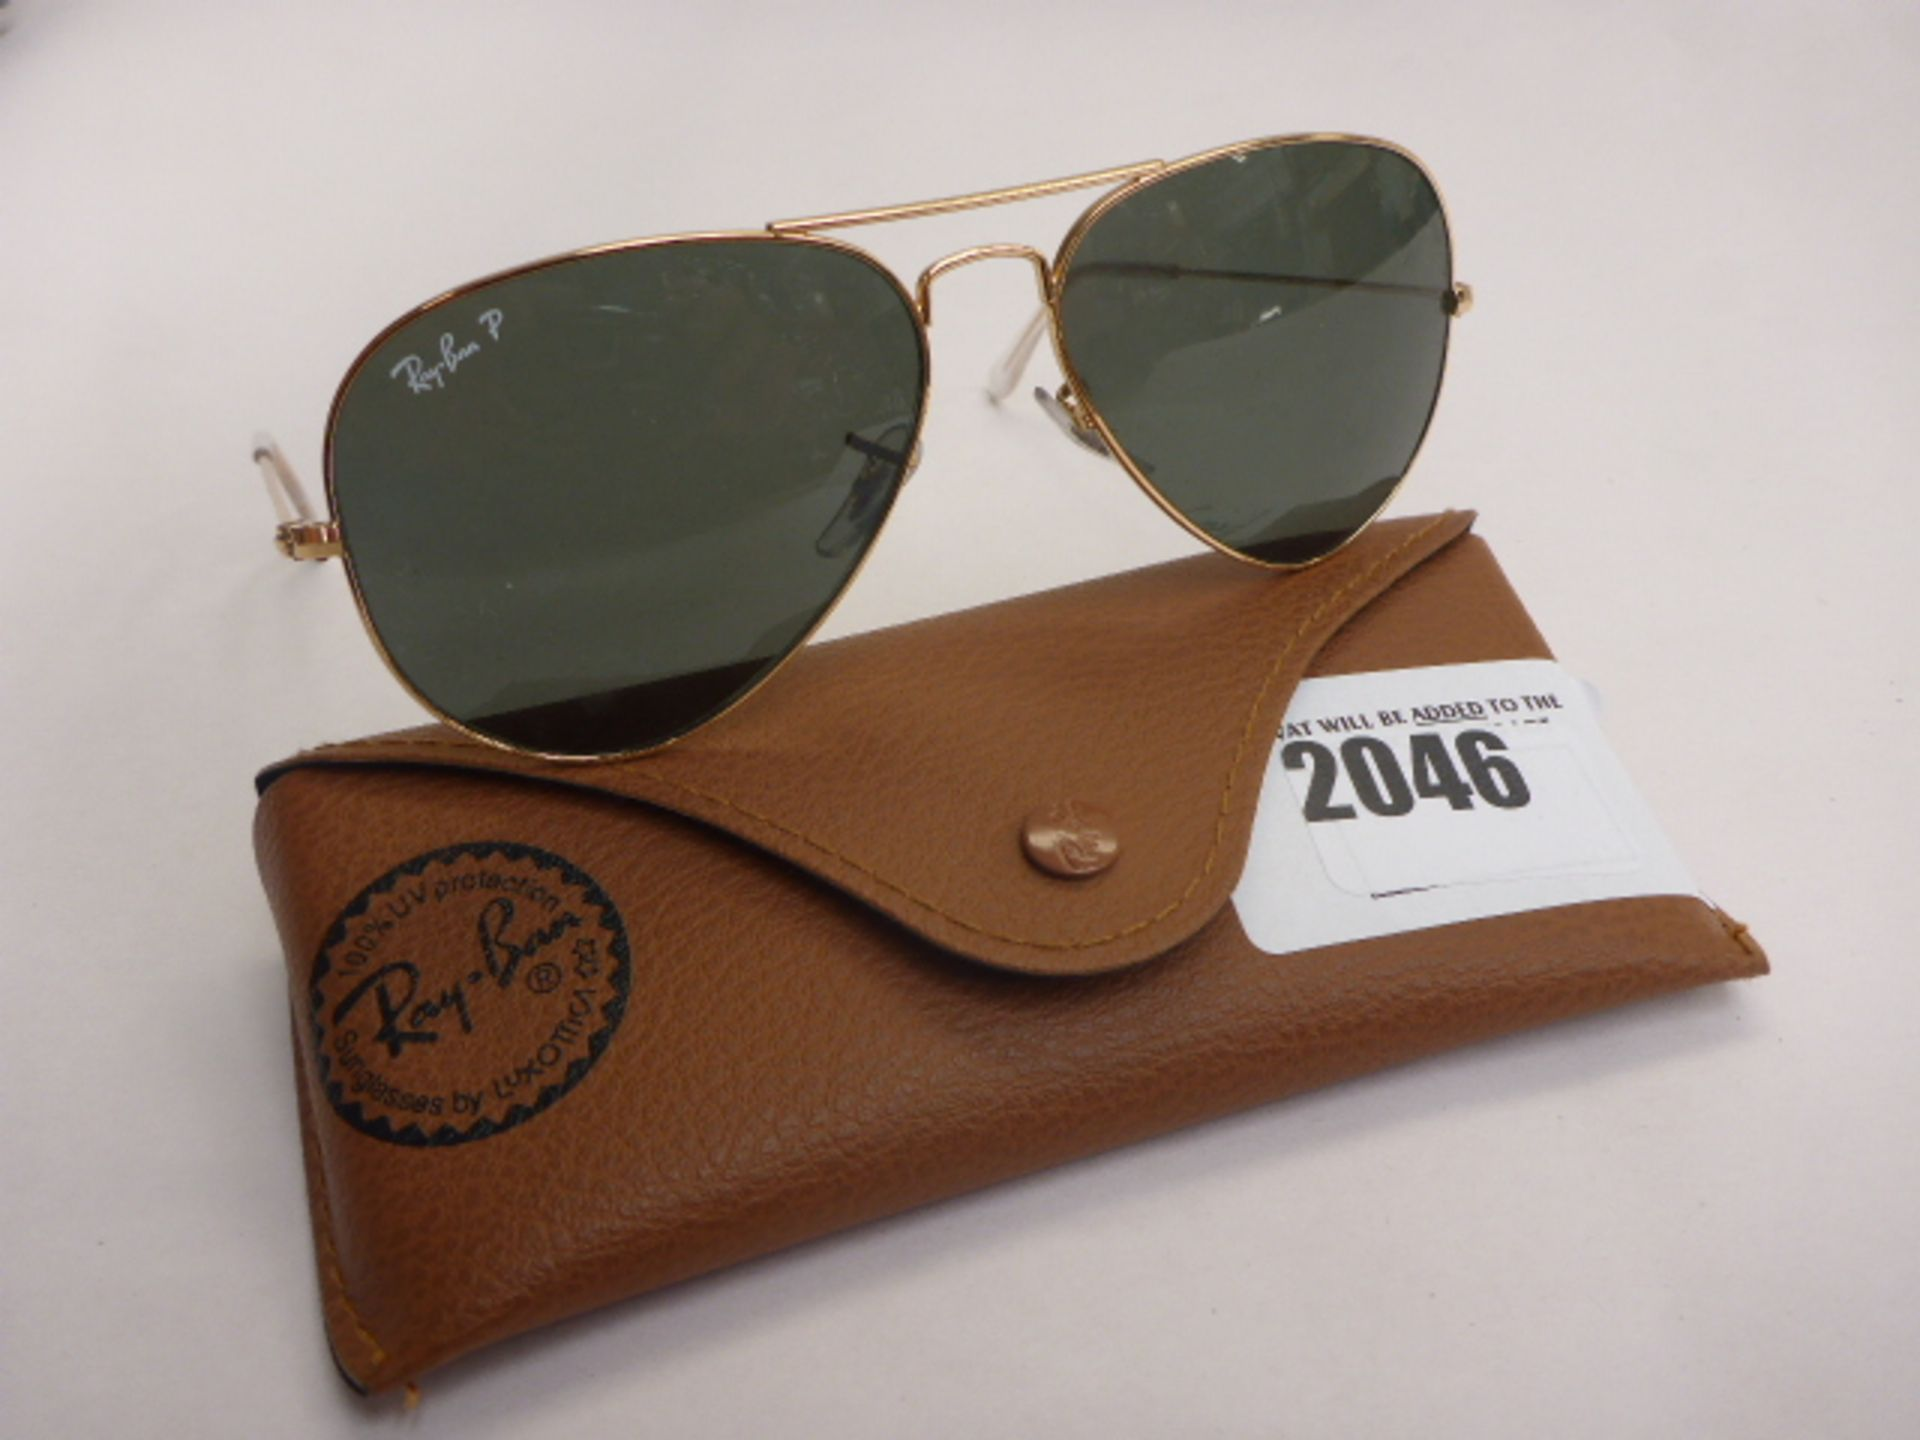 Lot 2046 - Ray-Ban 3025 aviator sunglasses